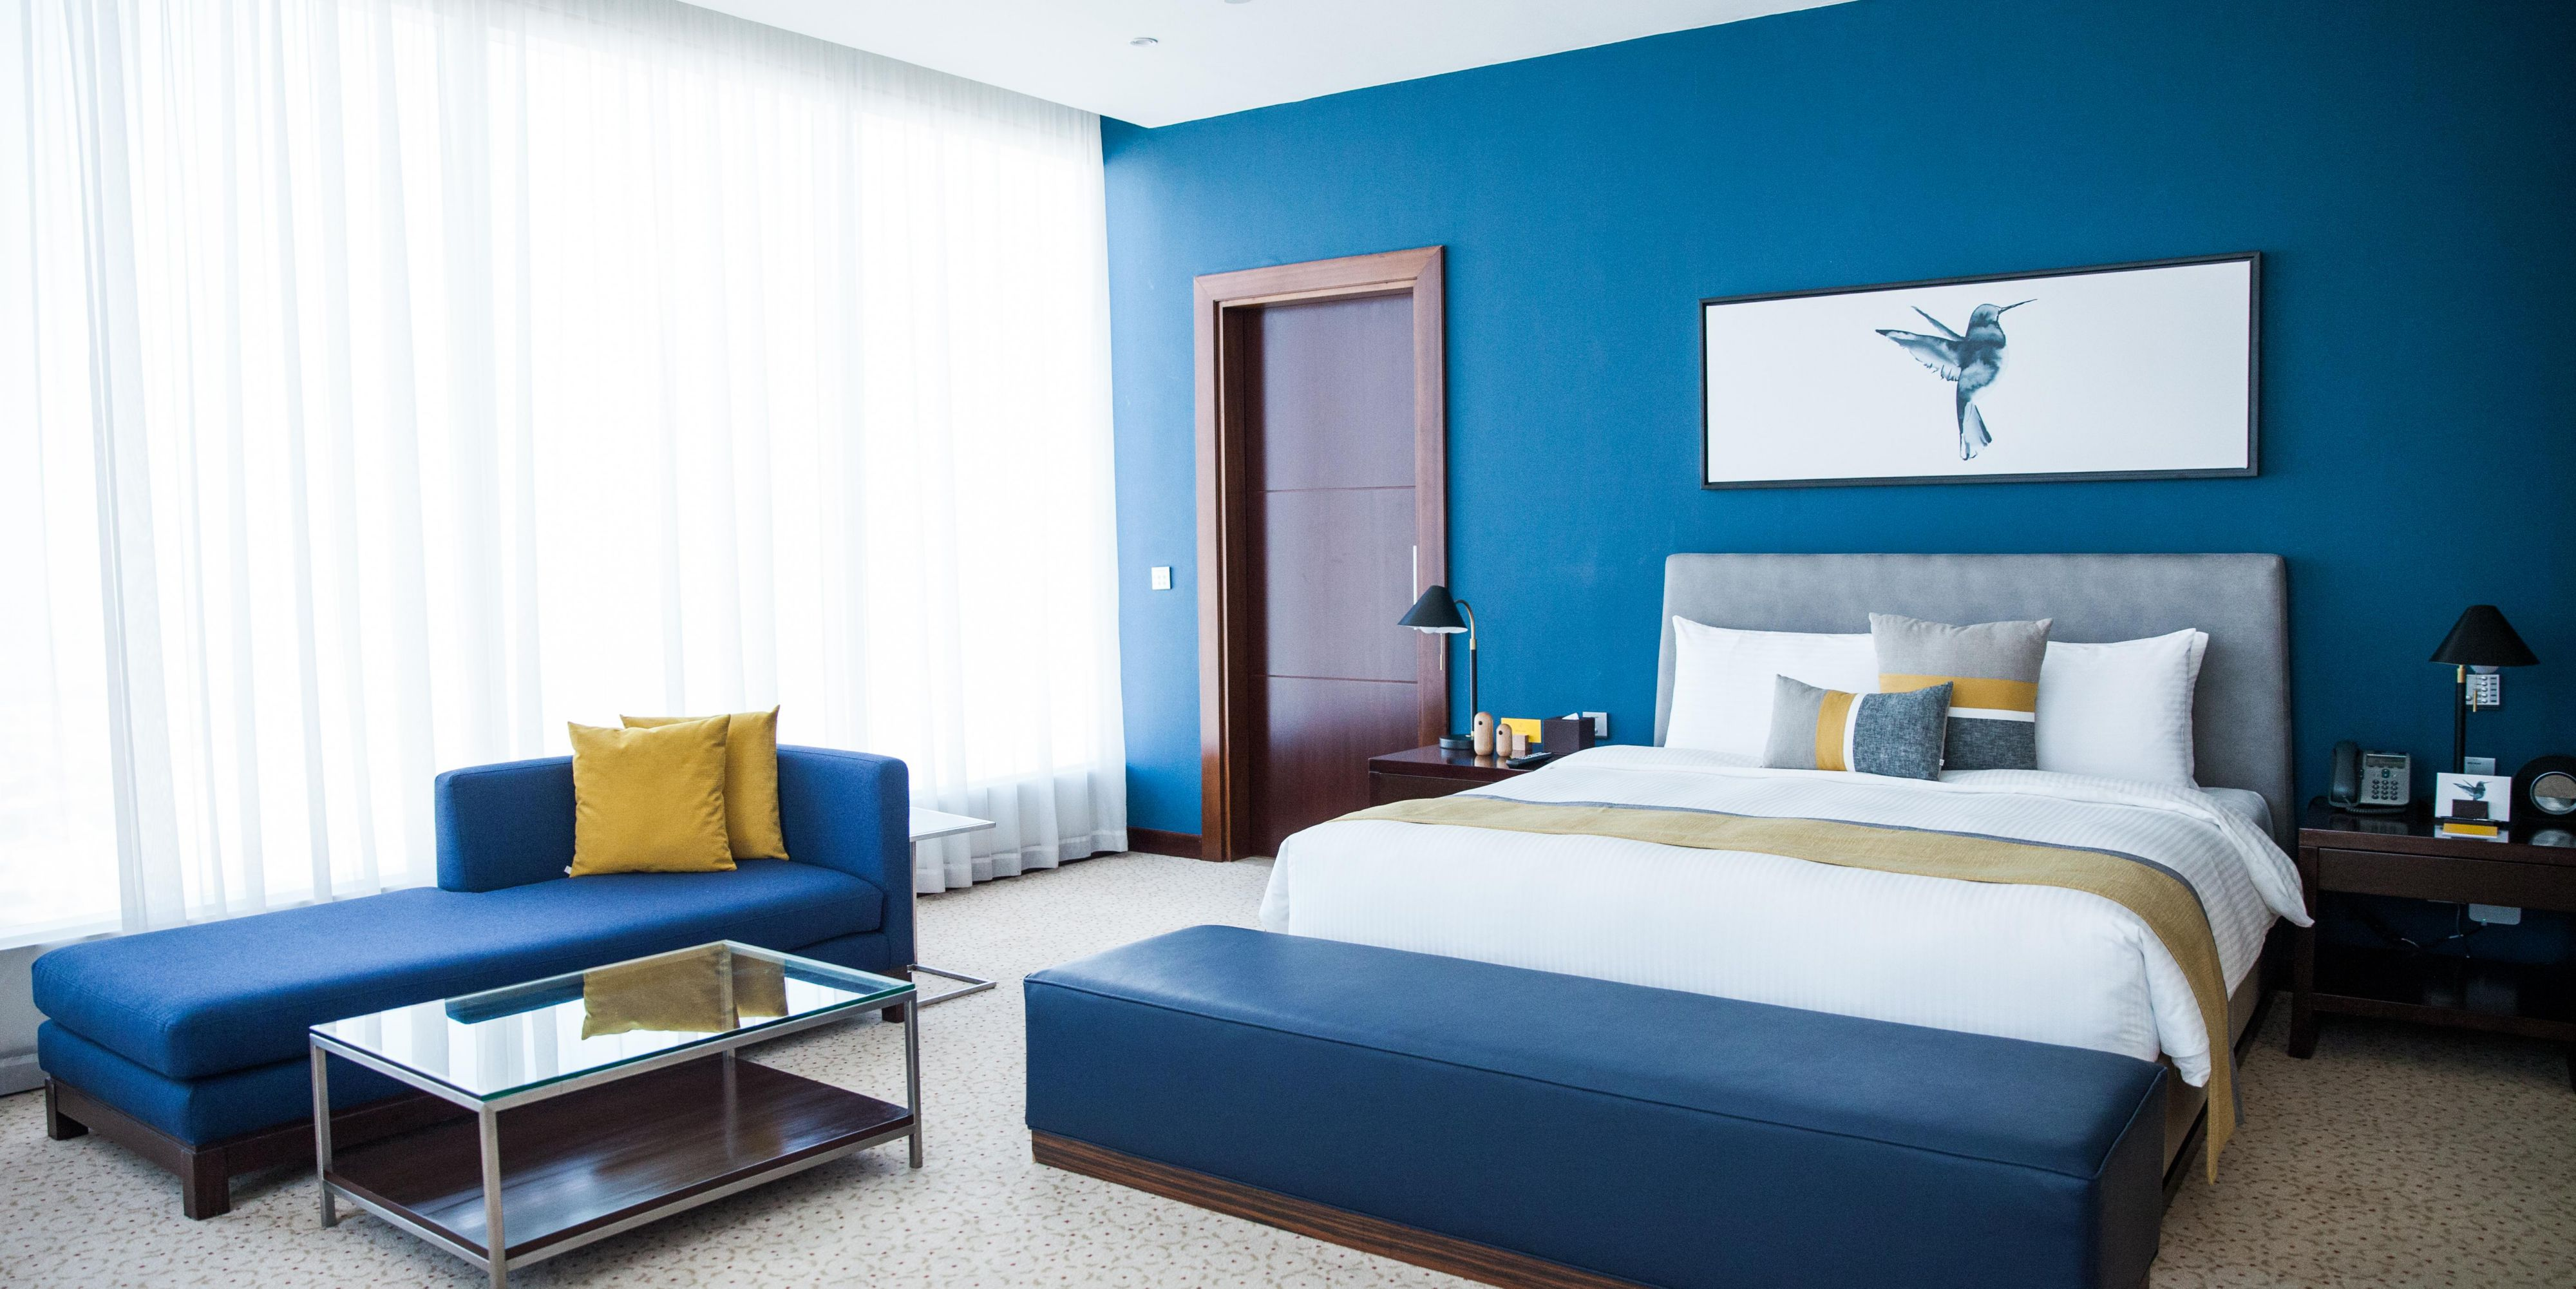 Ambassador Suite with views of Sheikh Zayed Road or Jumeirah Beach